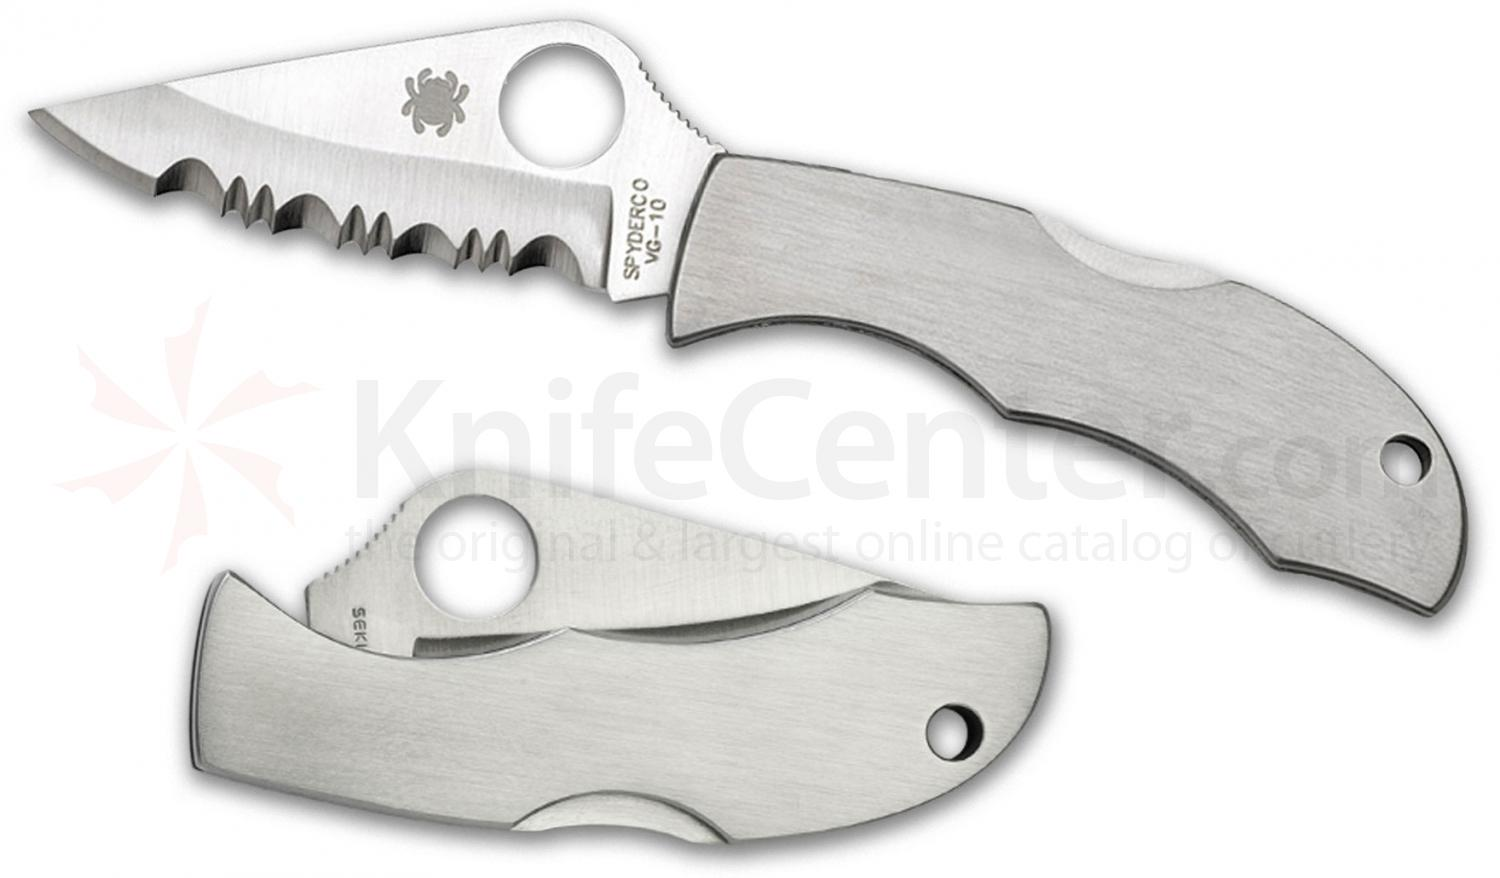 Spyderco LSSS3 Ladybug 3 Key Ring Knife 1.938 inch VG10 Satin Serrated Blade, Stainless Steel Handles